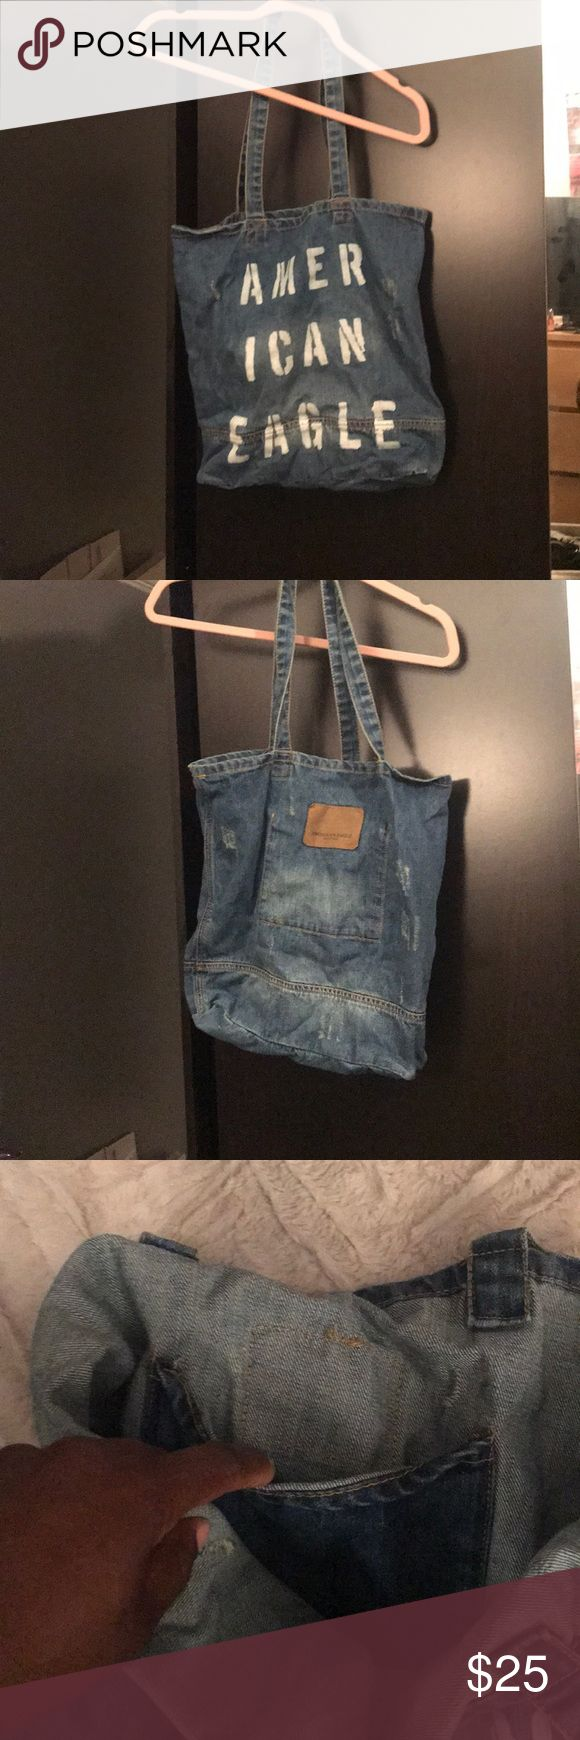 Denim Tote Bag Brand new denim tote bag from American Eagle. Never used, got as a gift. American Eagle Outfitters Bags Totes